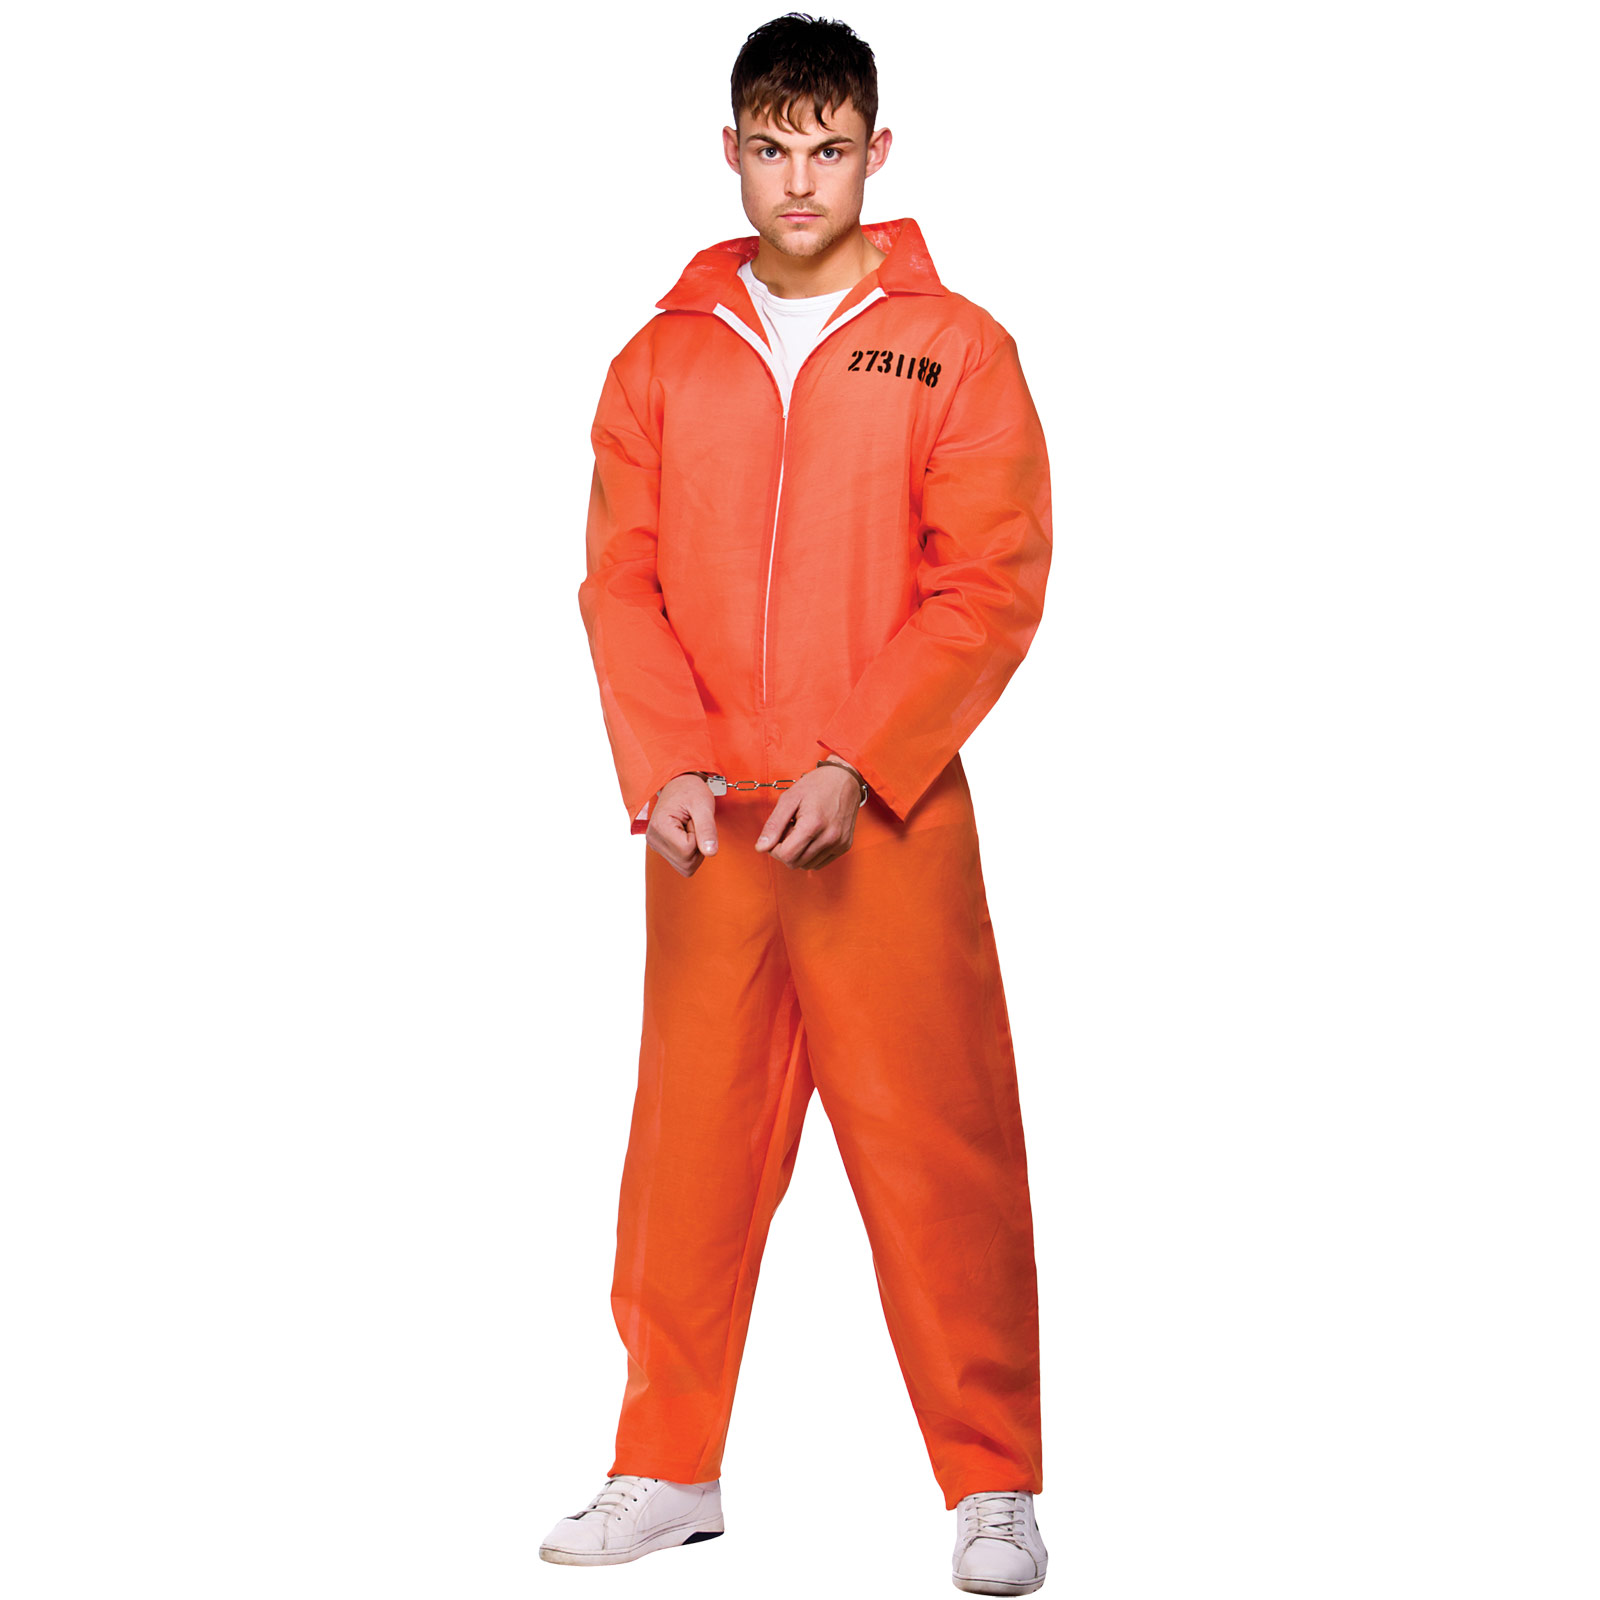 Mens Orange Convict Prisoner Jumpsuit Fancy Dress Costume ...